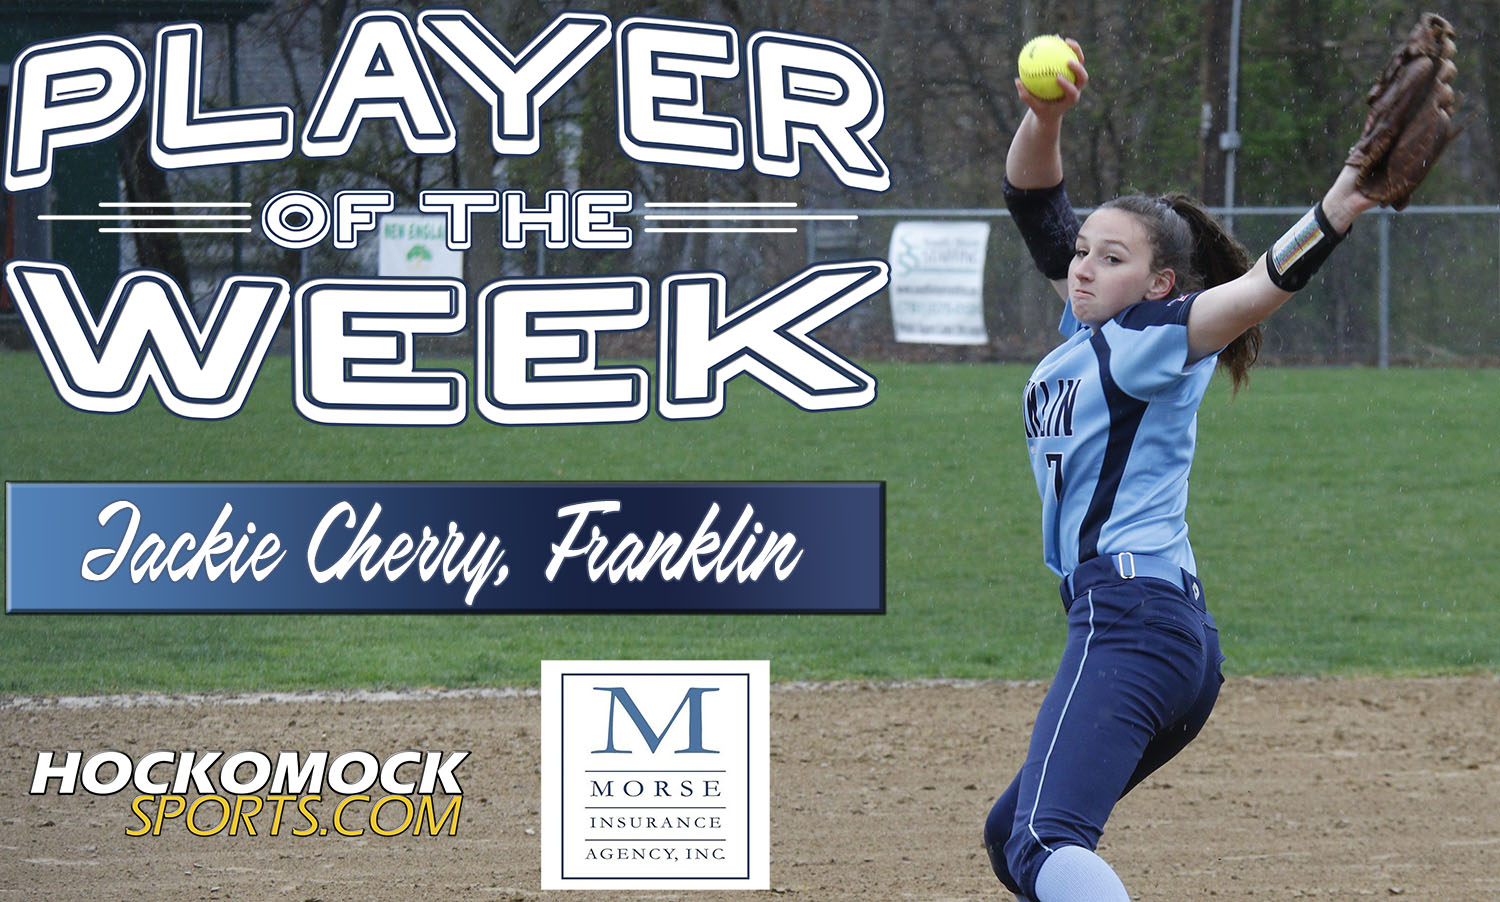 Player of the Week: Jackie Cherry, Franklin Softball